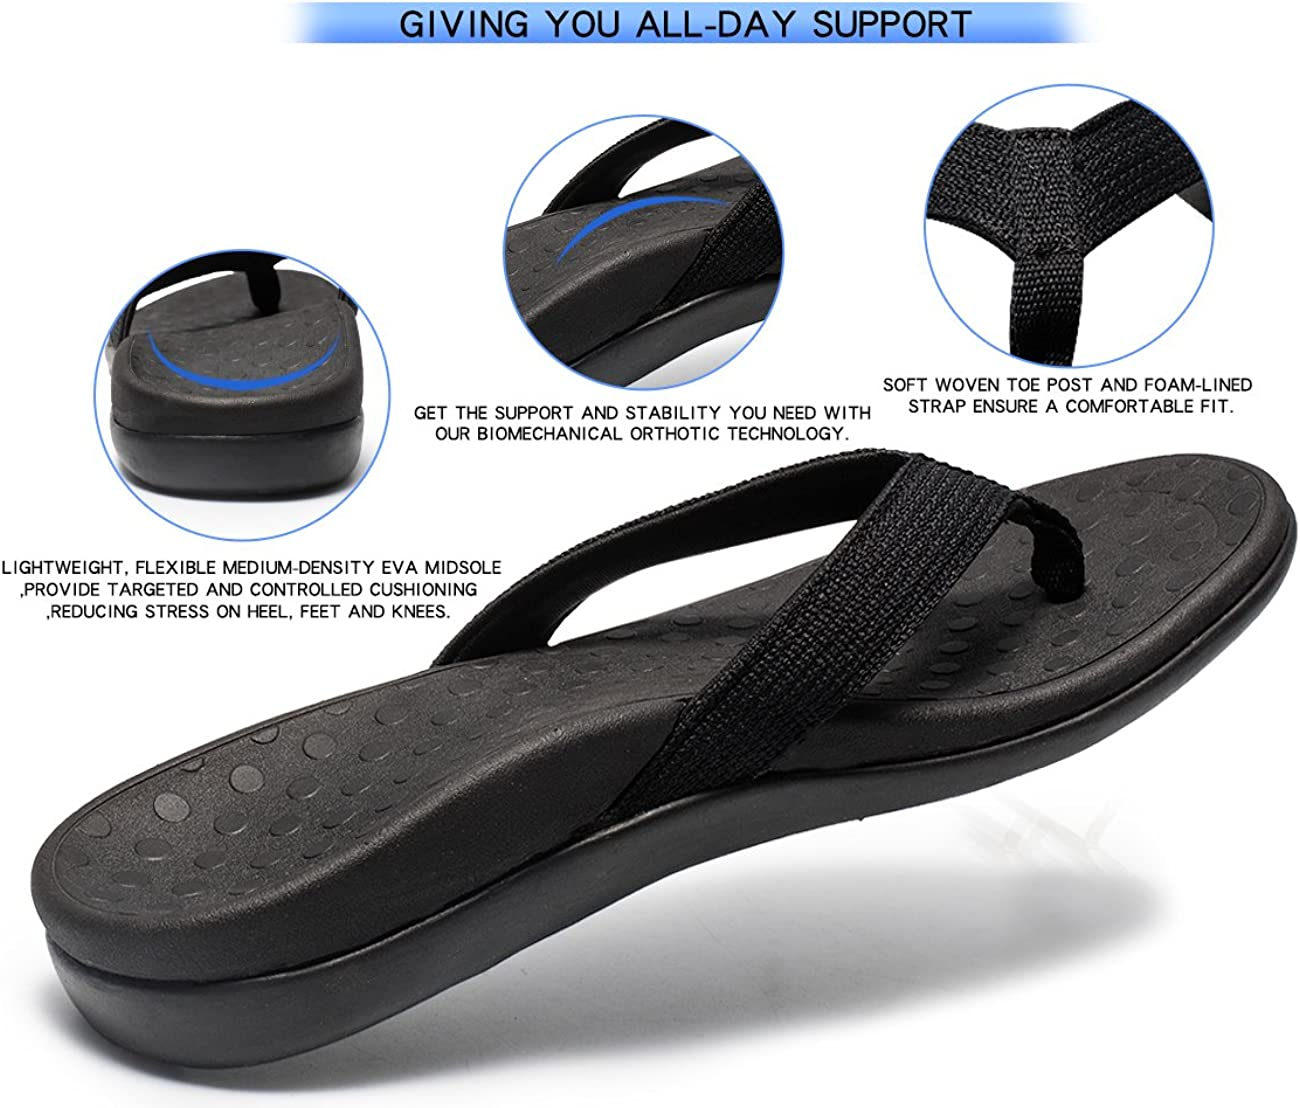 SOARFREE Plantar Fasciitis Feet Sandal with Arch Support